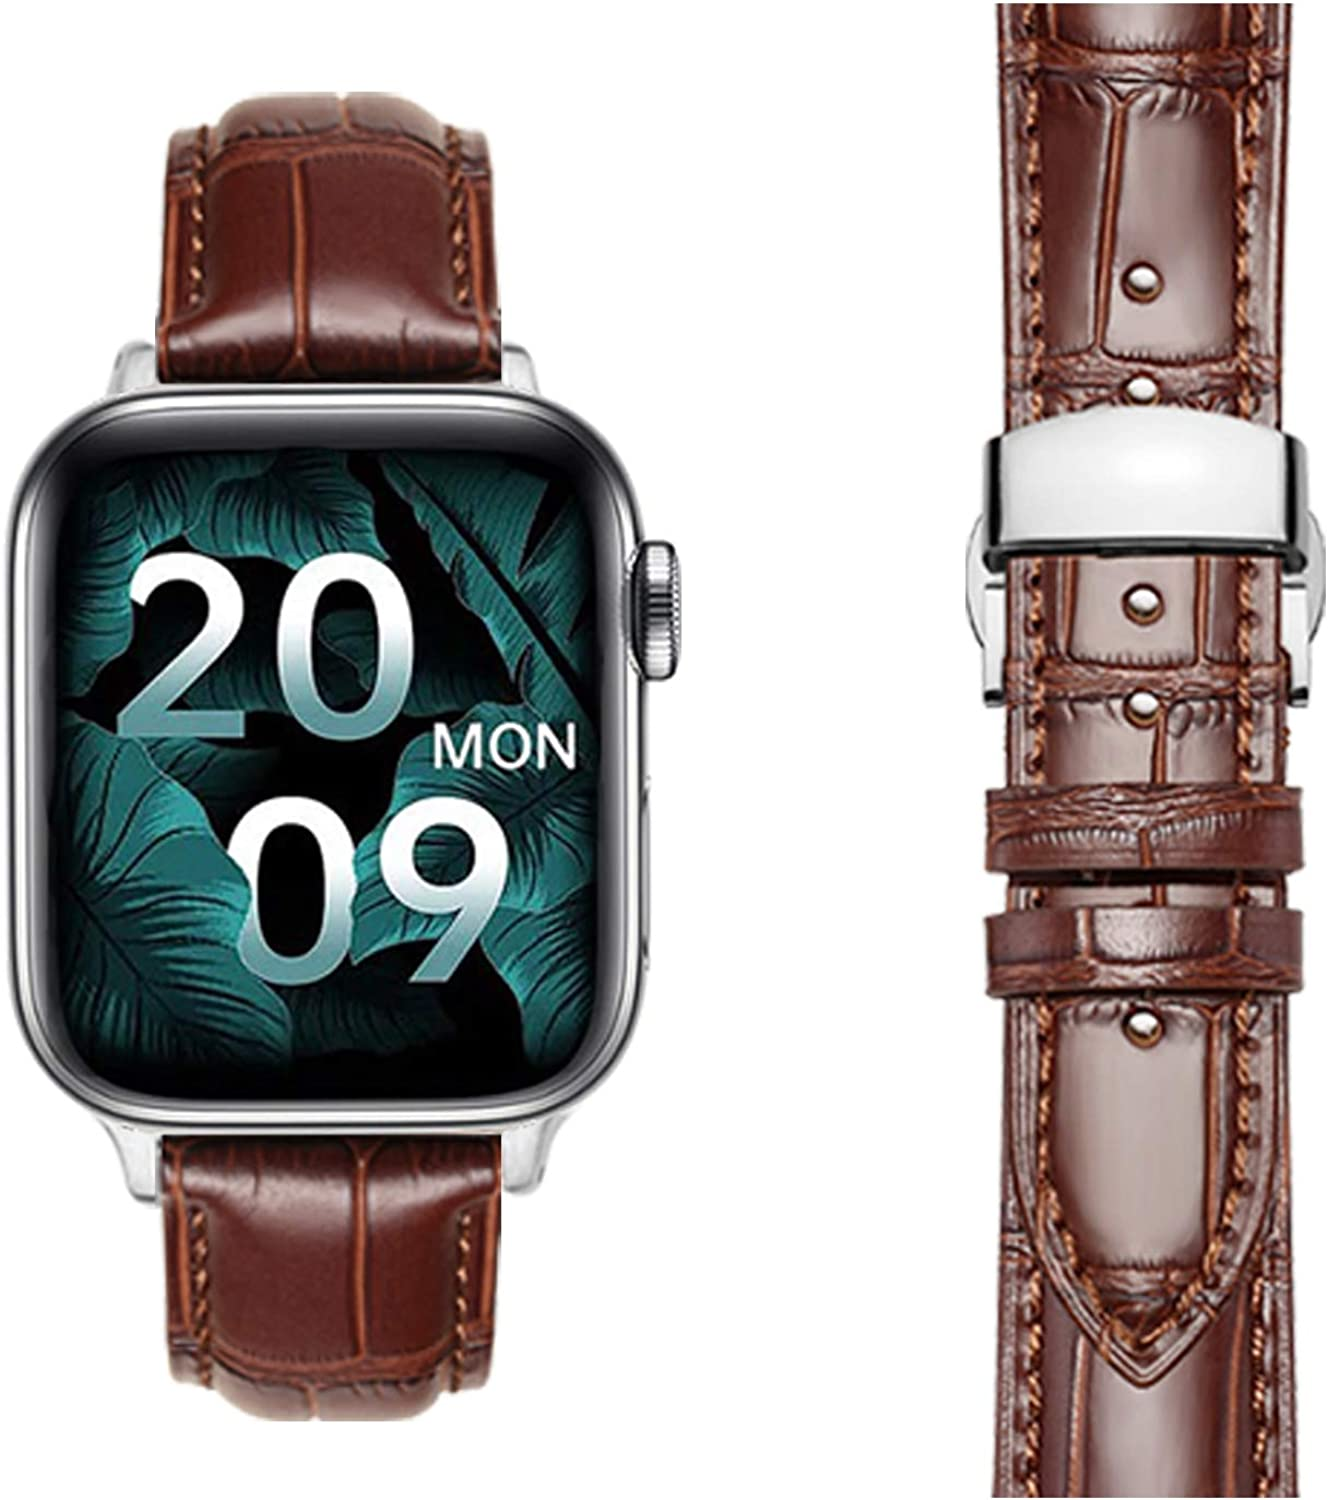 Moran Compatible with Apple Watch Band 38mm 40mm 42mm 44mm Genuine Leather Band Deployment Butterfly Buckle Replacement strap Compatible with iWatch series 6 5 4 3 2 1 SE